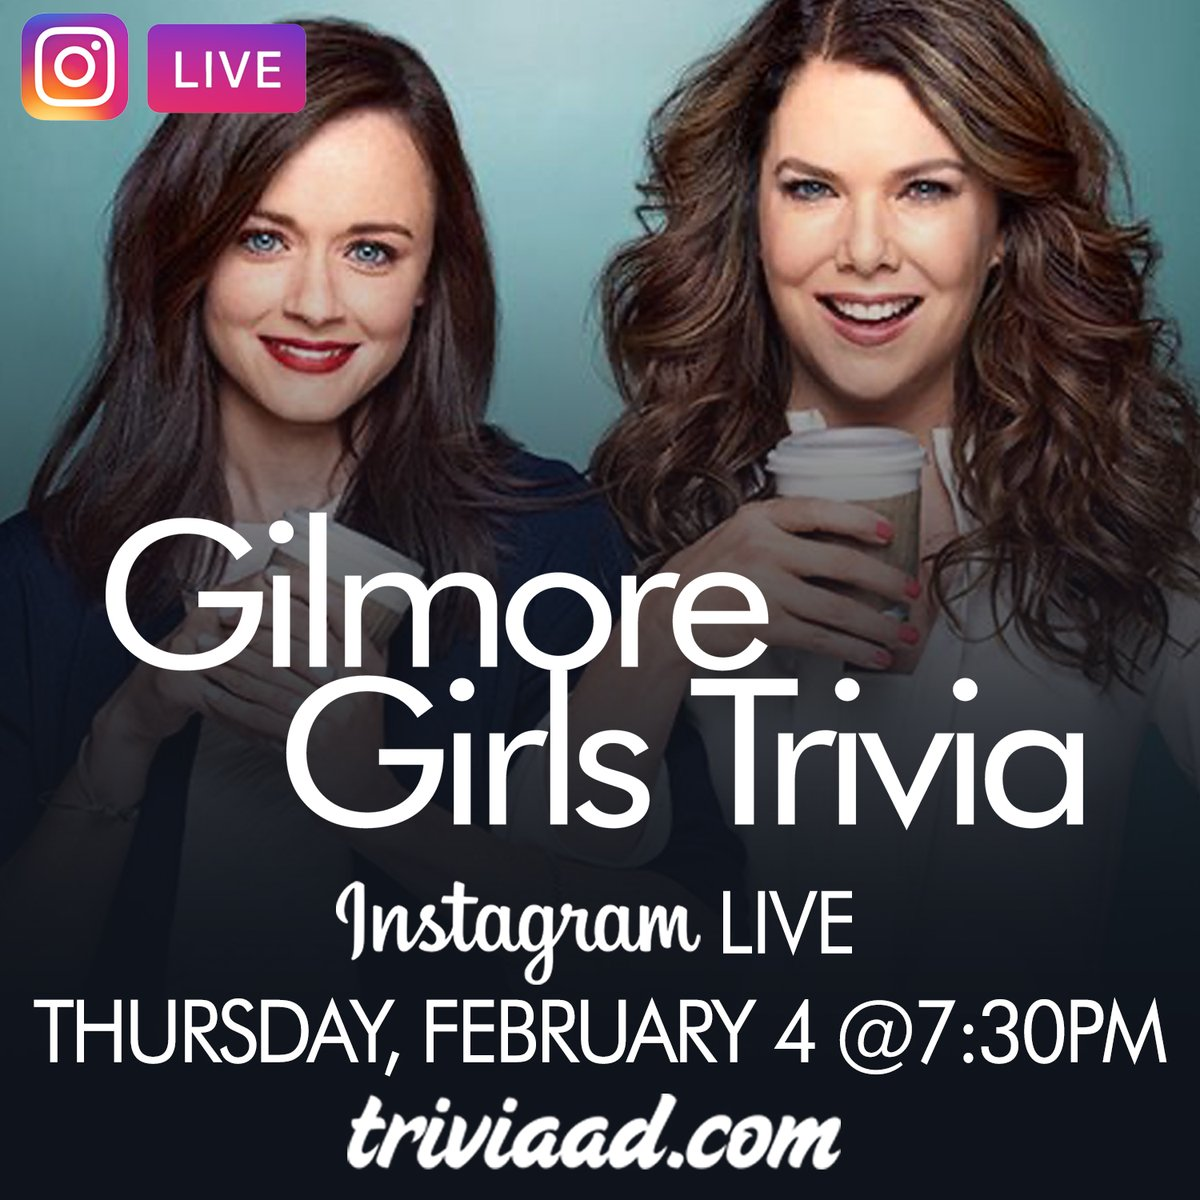 #GilmoreGirls #Trivia on #InstagramLIVE on Thursday, February 4 at 7:30pm ET. Follow @TriviaADDotCom on #Instagram to play! #GilmoreGirlsTrivia #ThemedTrivia #ThrowbackThursday #TBT